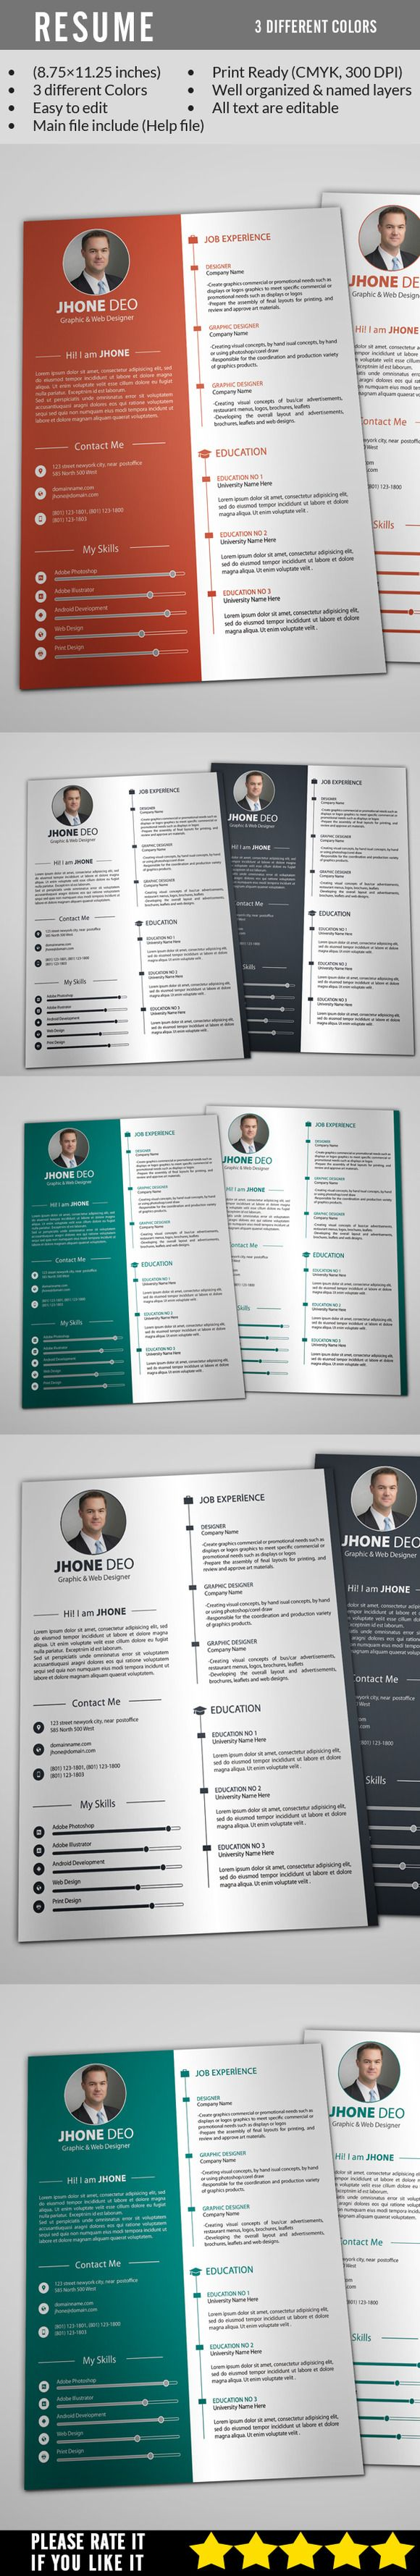 Cv Templates Design%0A Clean Resume by Mehrographix on Creative Market